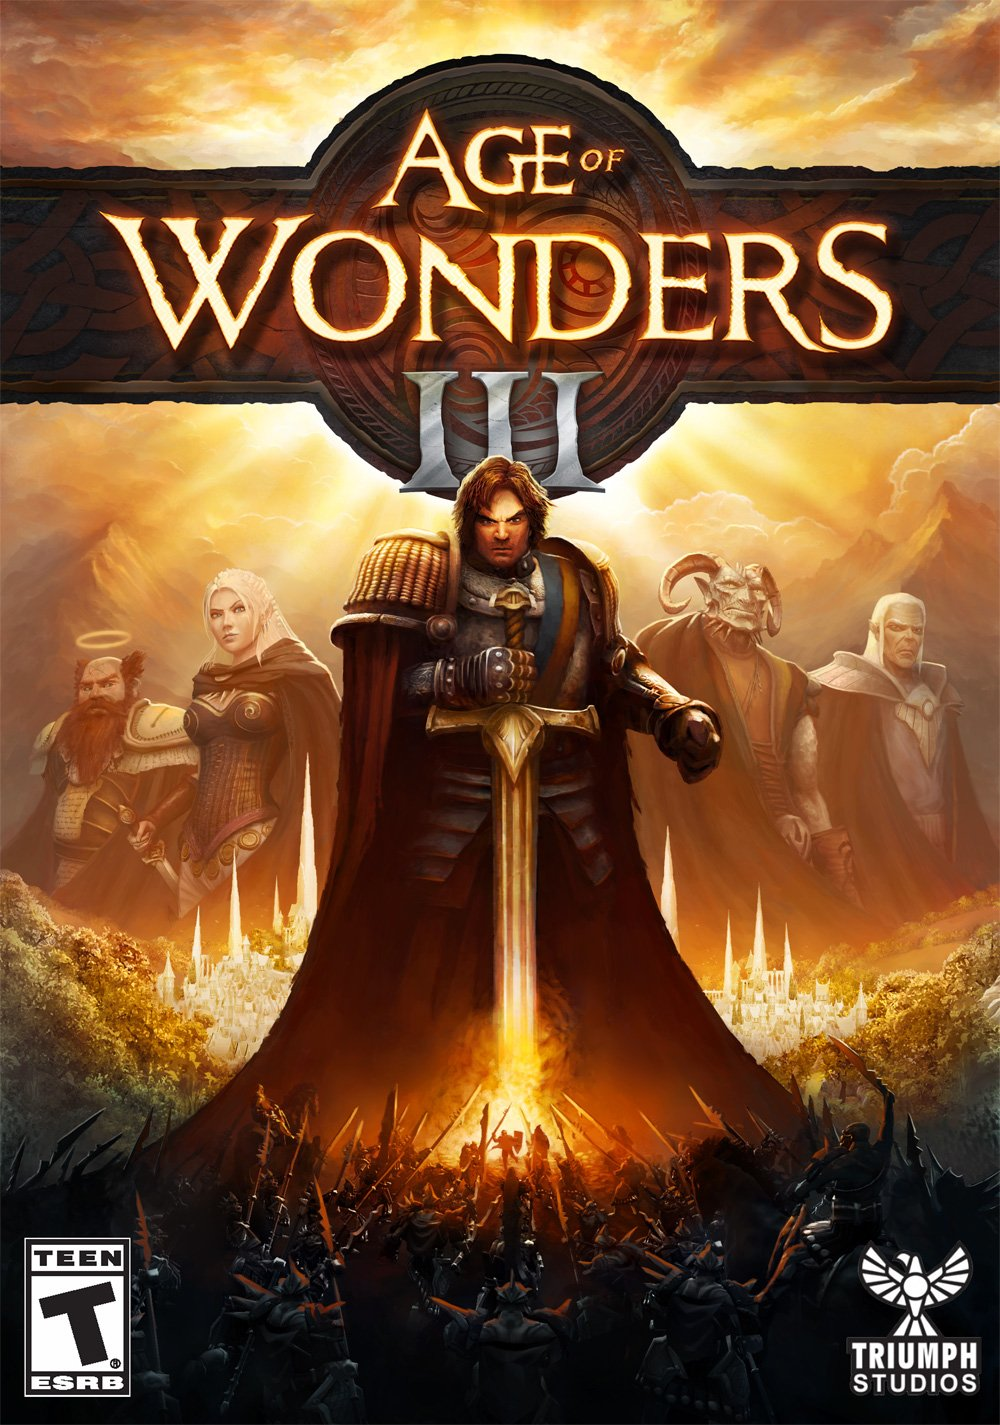 Age of wonders iii darkhackct torrent ita download - Oltre il giardino torrent ita ...